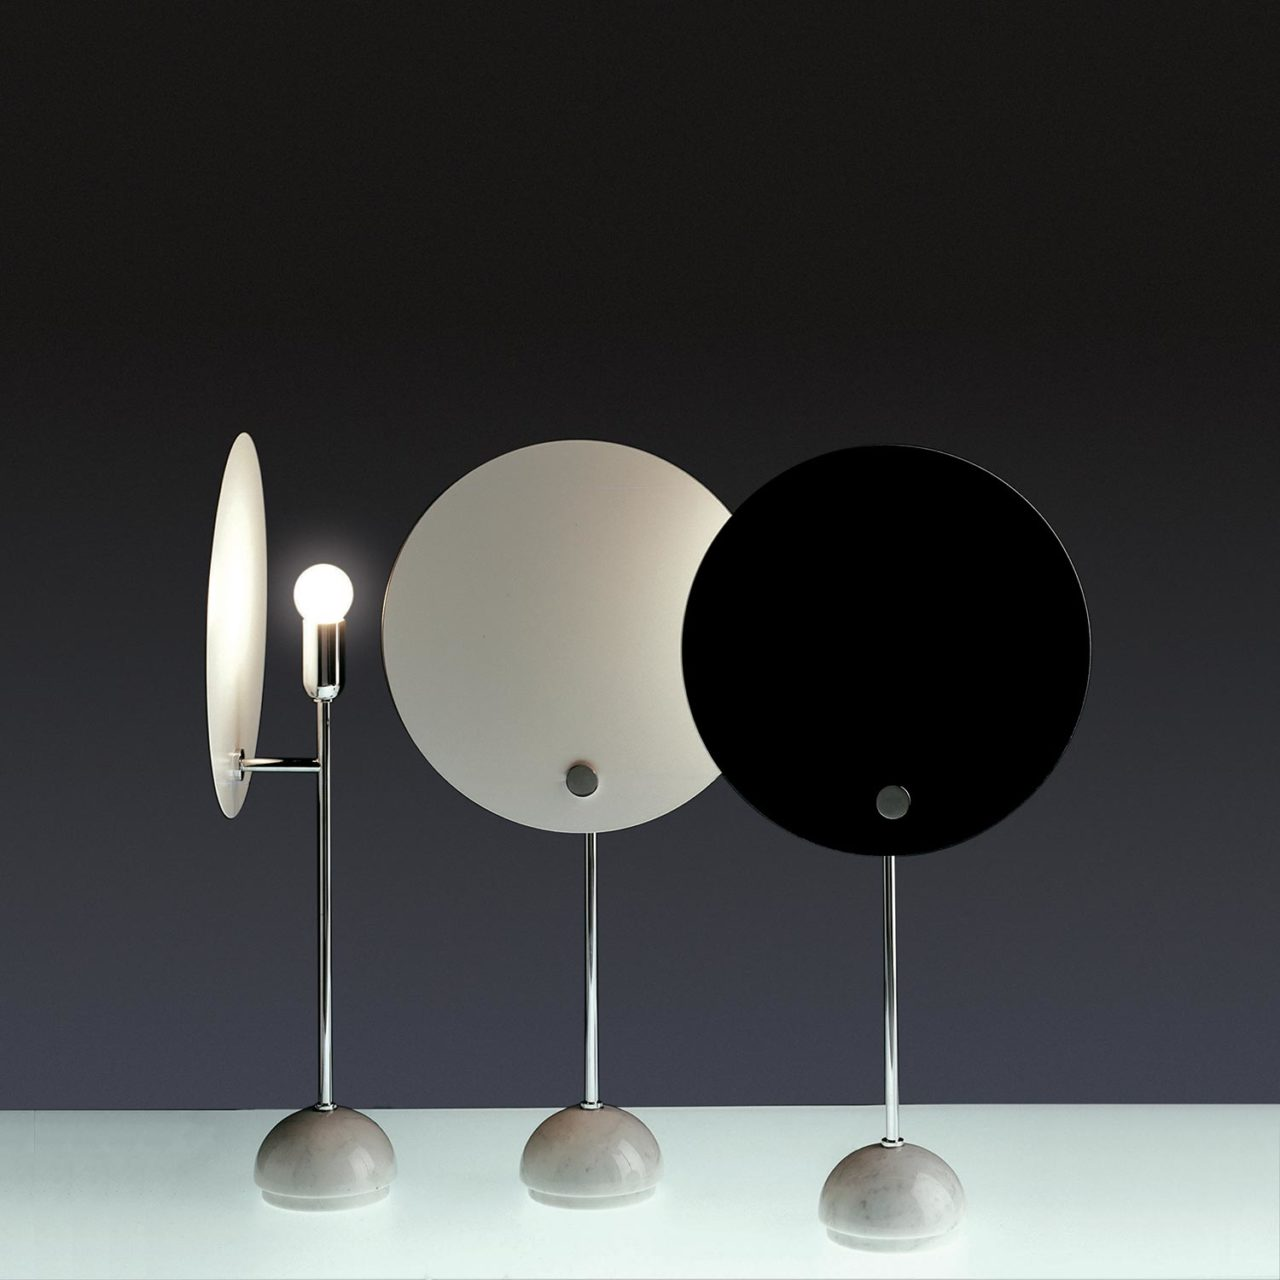 Kuta Table Lamp - <p>Kuta is an indirect light aluminium lamp with a circular reflector in aluminium, which shields the lighting distribution, giving the effect of a solar eclipse. The circular screen is painted in white and black, the stem and the metal small parts and hemispherical support are chromed. Table version with base in white marble. </p>